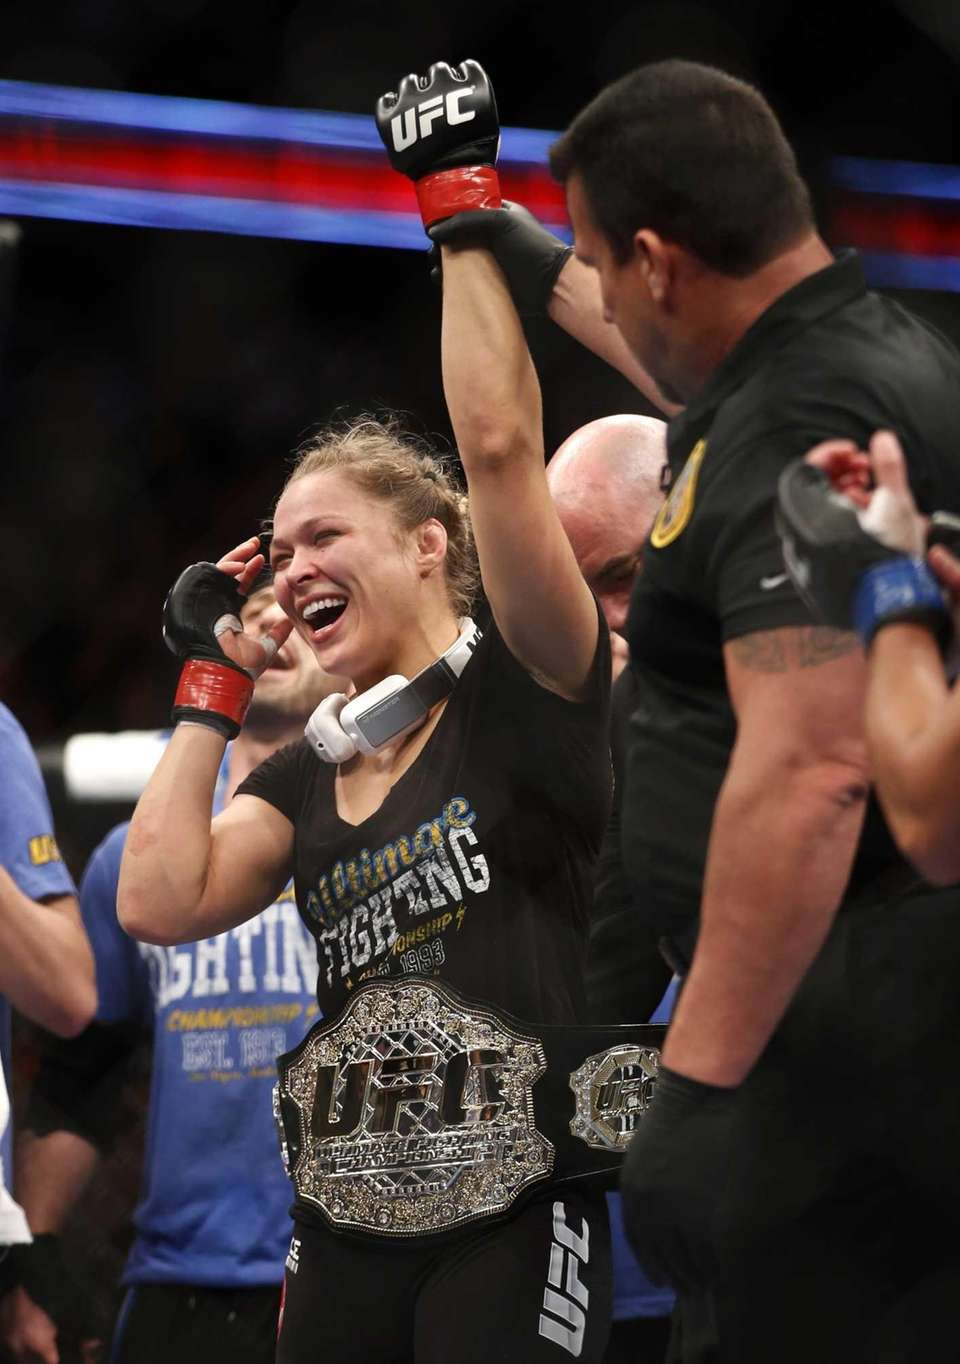 Rousey fought Liz Carmouche at UFC 157 on